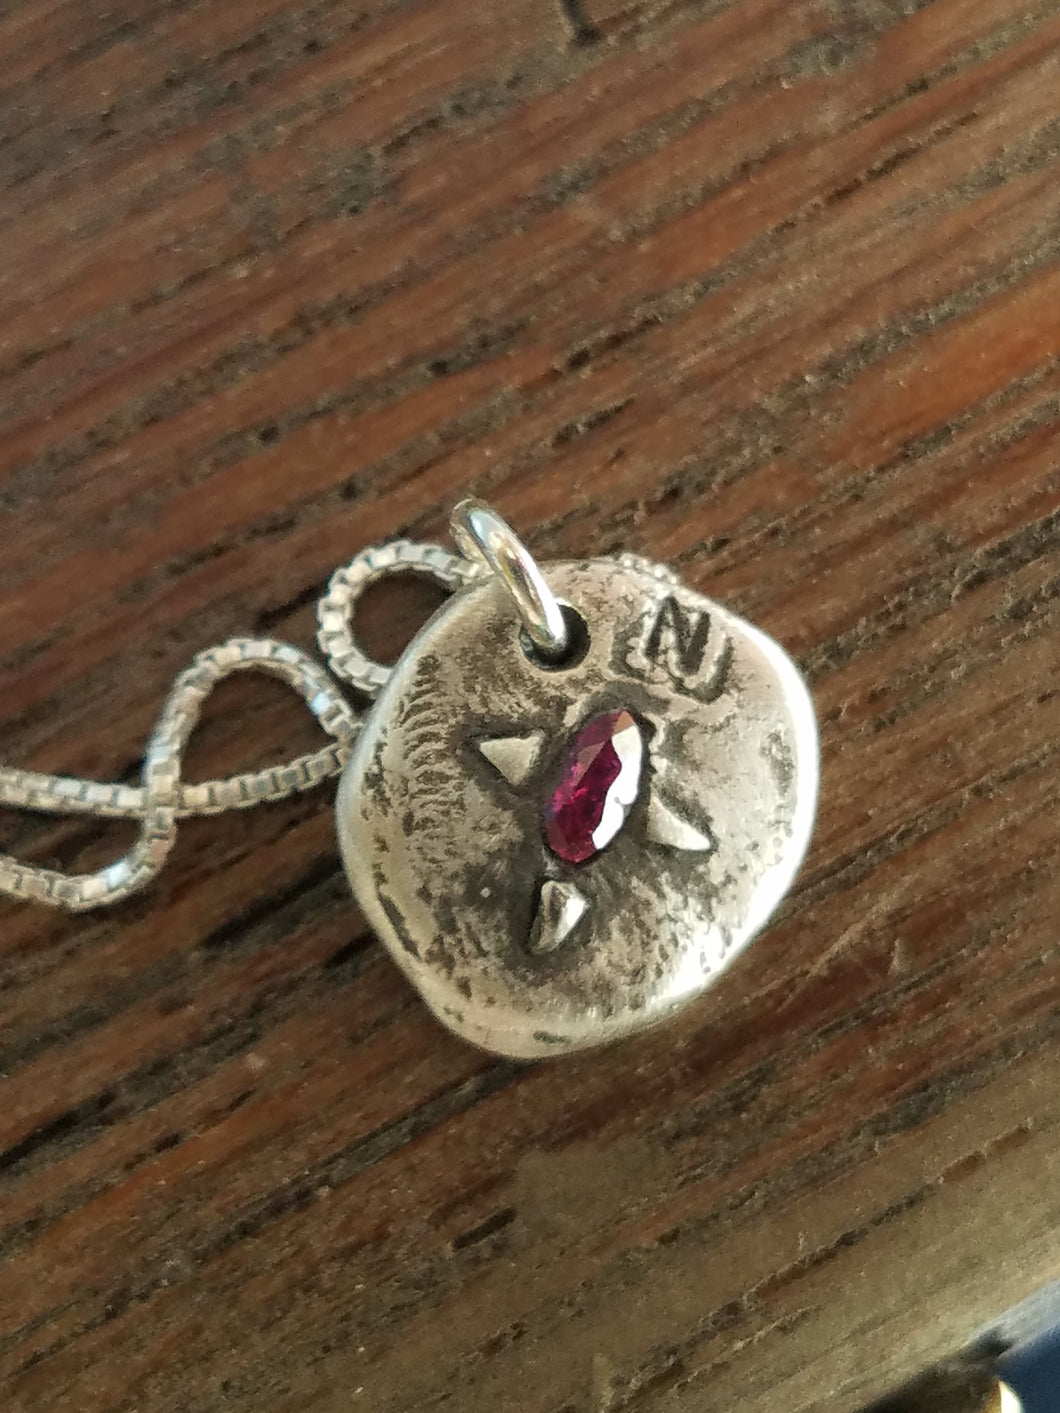 Simon & LuLu Compass Necklace with Embedded Ruby